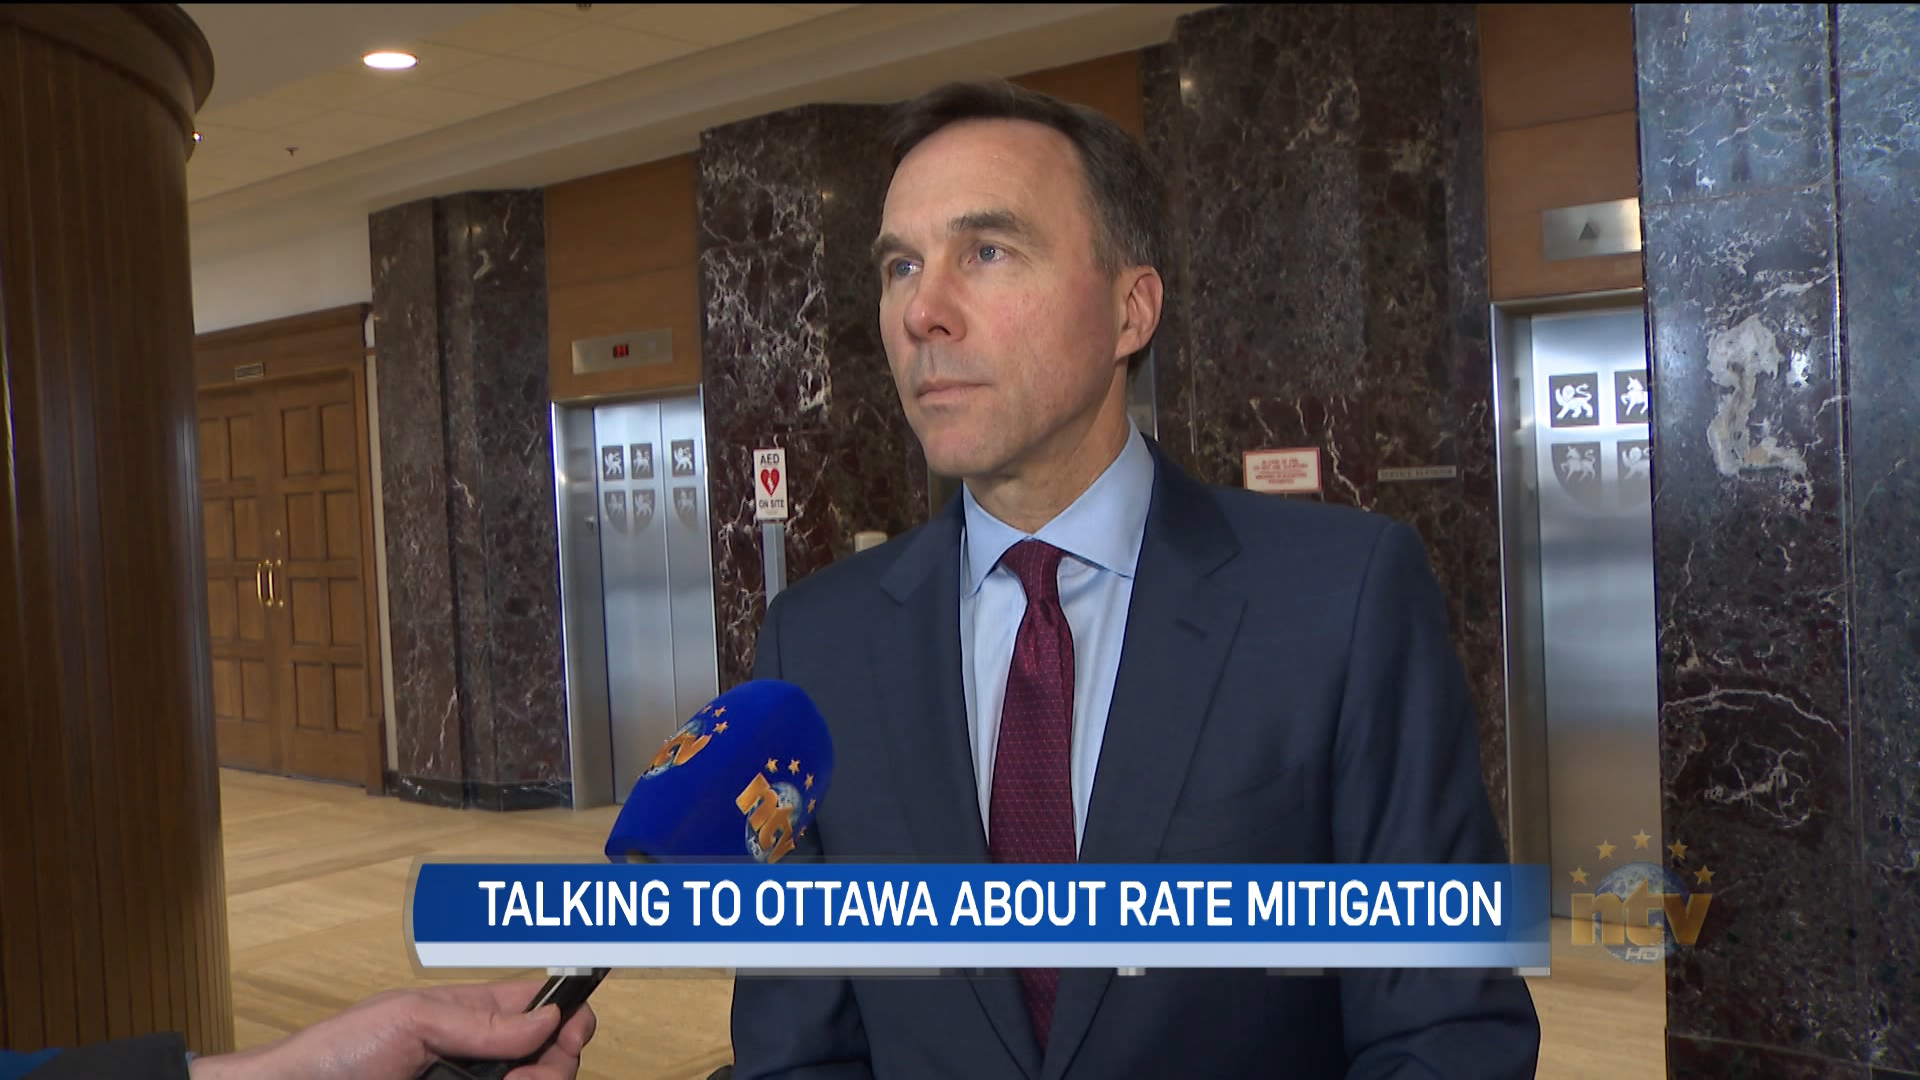 Morneau and Ball call first rate mitigation meeting 'positive' but offer few details